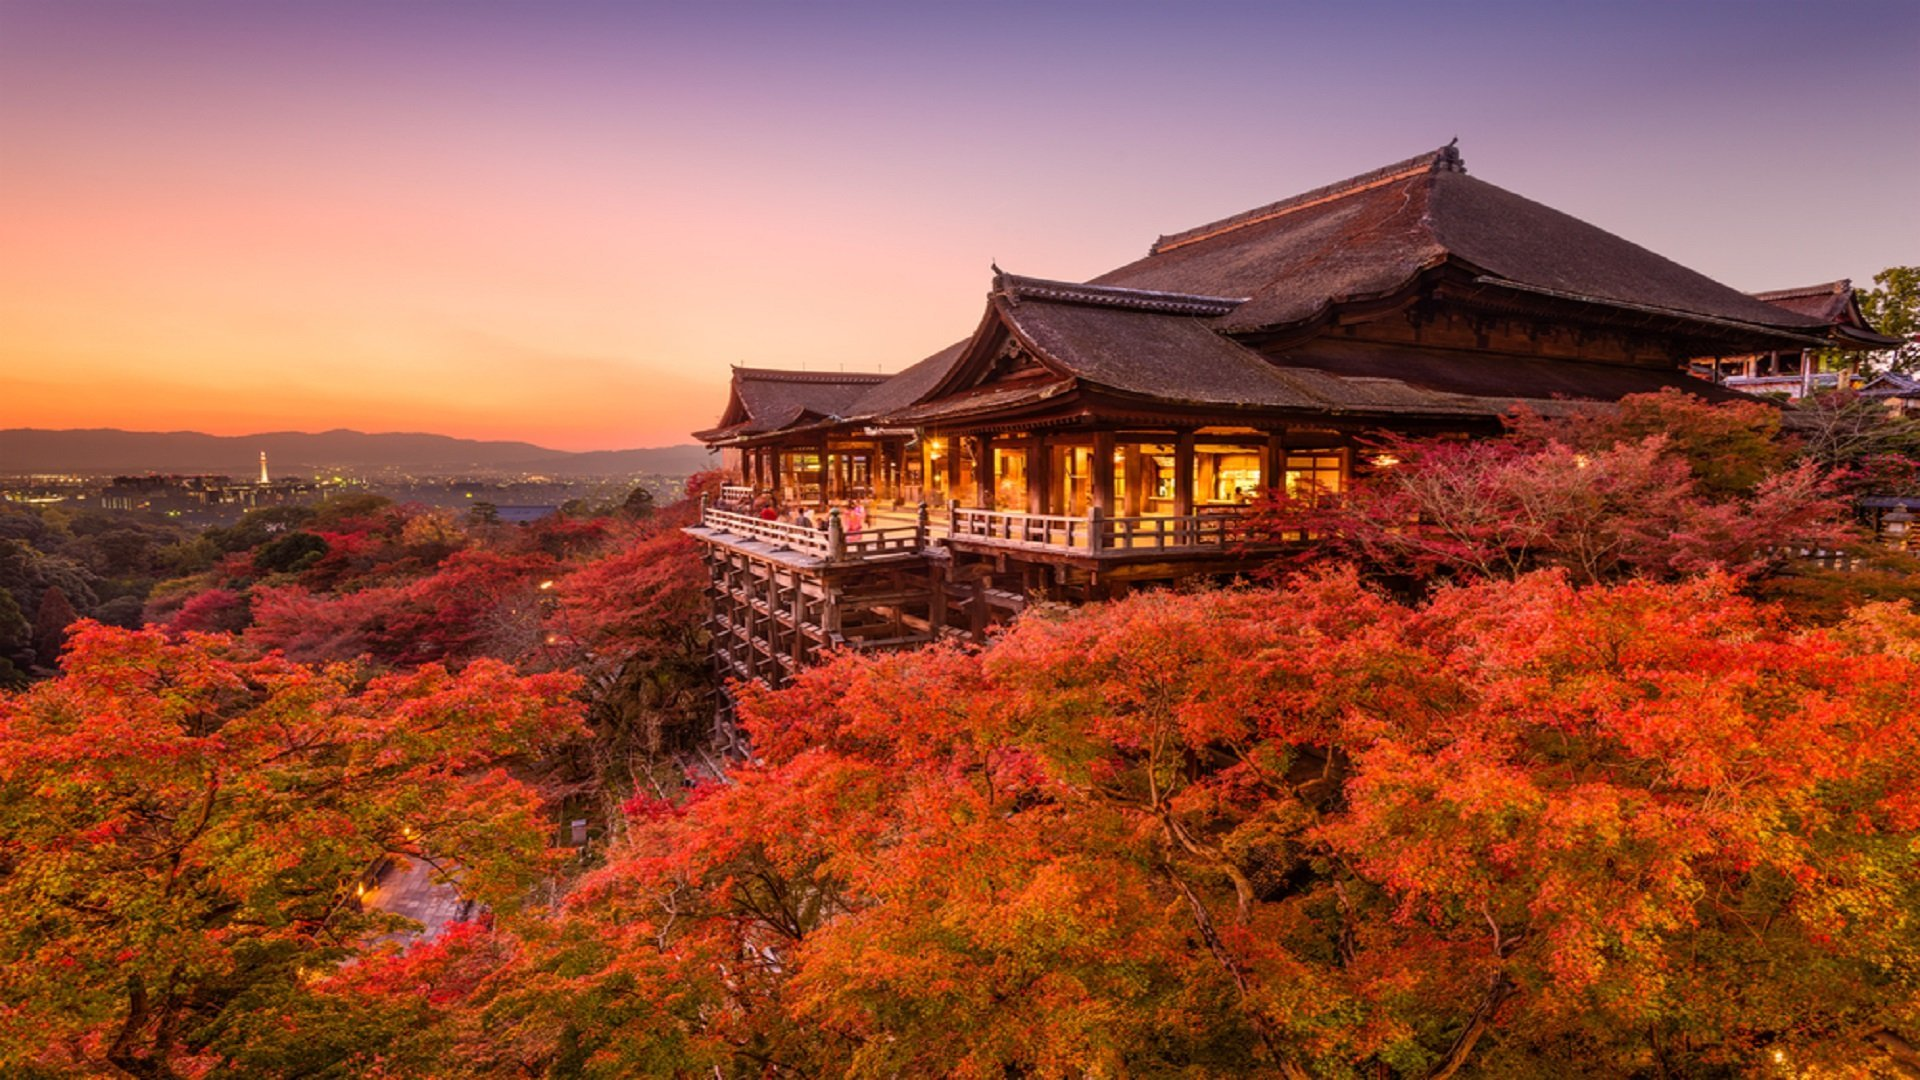 The Ultimate Vacation Travel Guide To Kyoto Solotravel Doyoutravel Welltravelled Lovetotravel